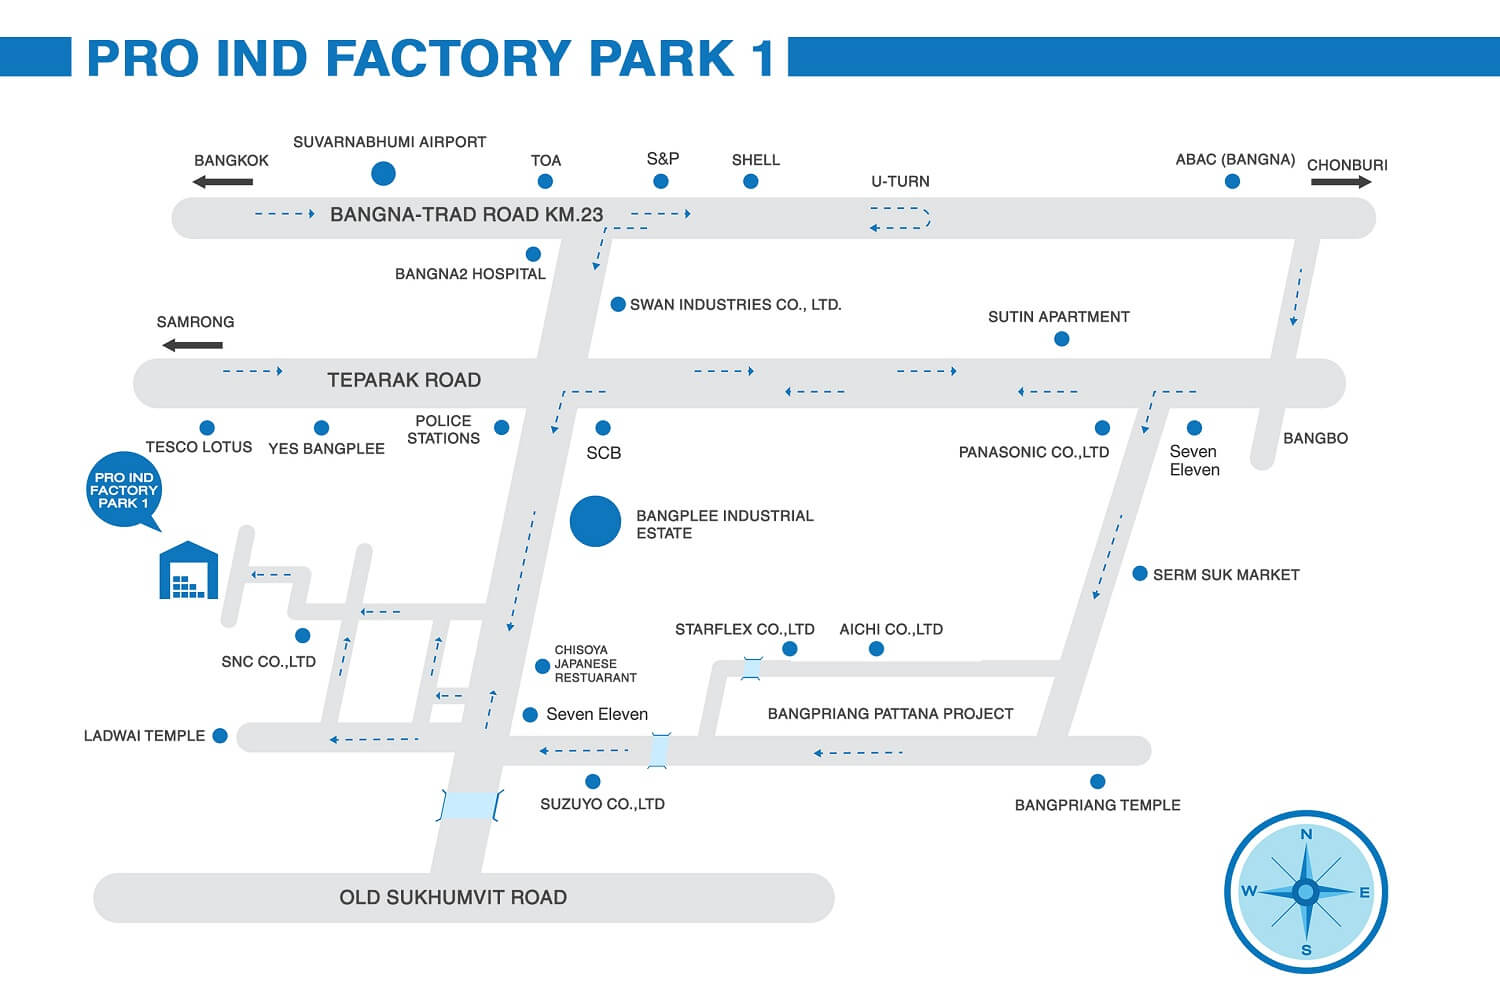 Pro Ind Factory Park 1 Project Map